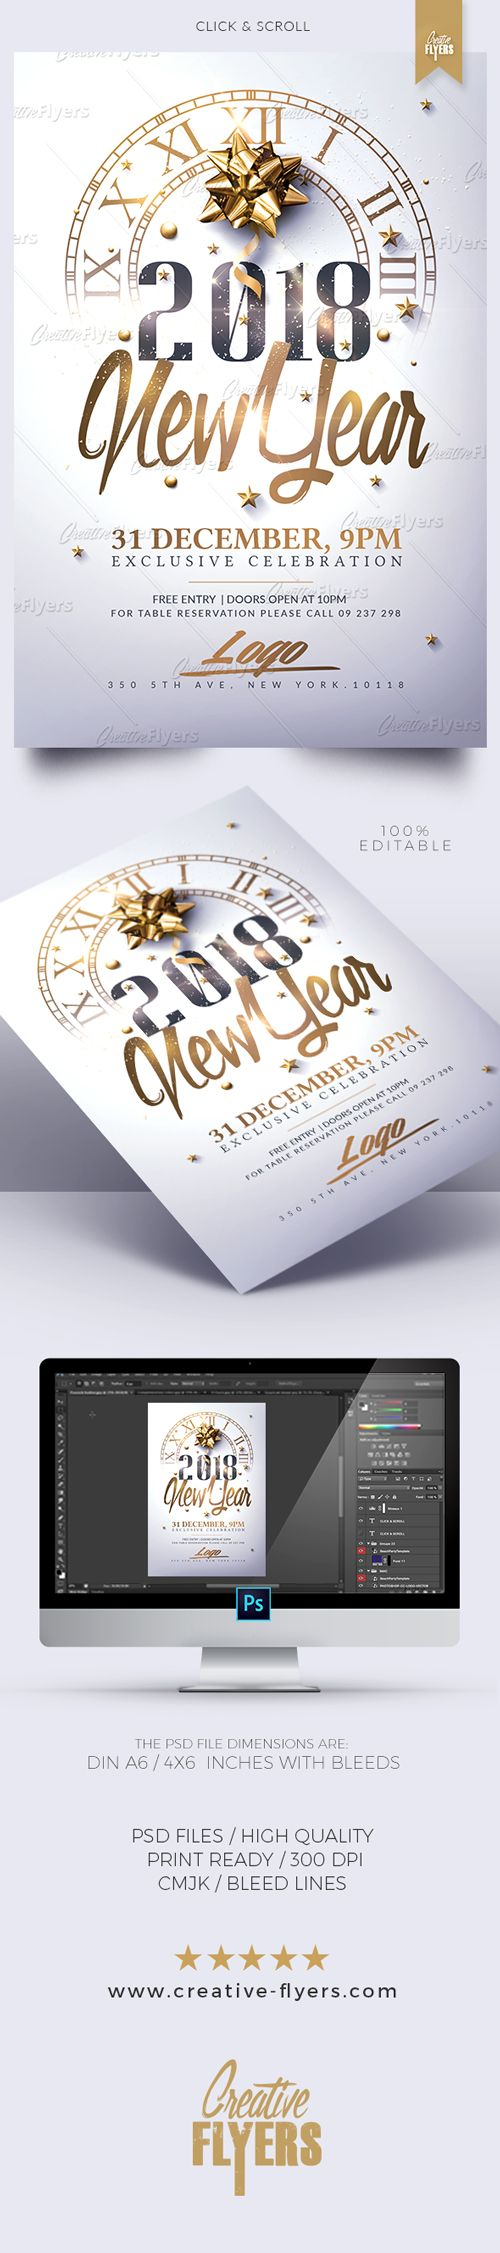 new year flyer templates design 100 editable available edit psd flyer templates